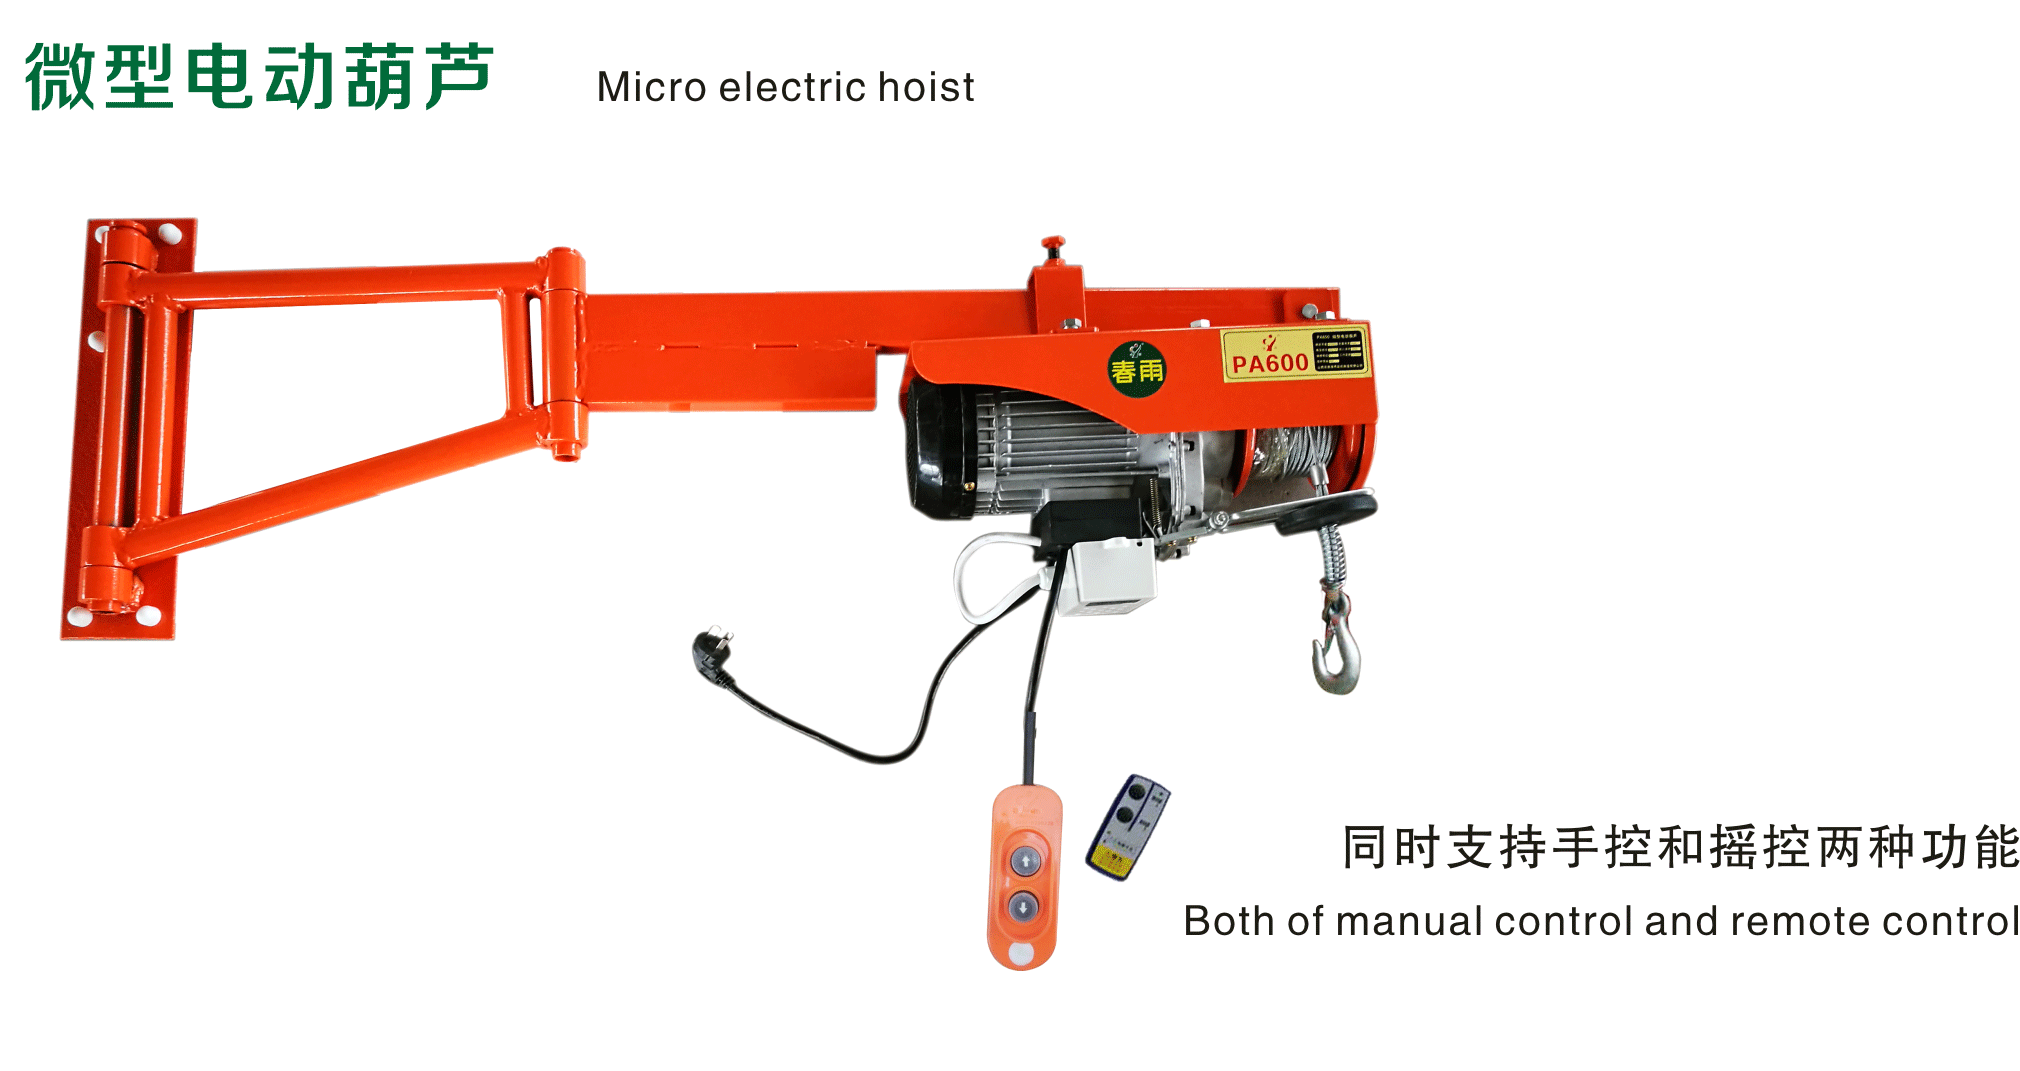 微型电动葫芦(Micro electric hoist)